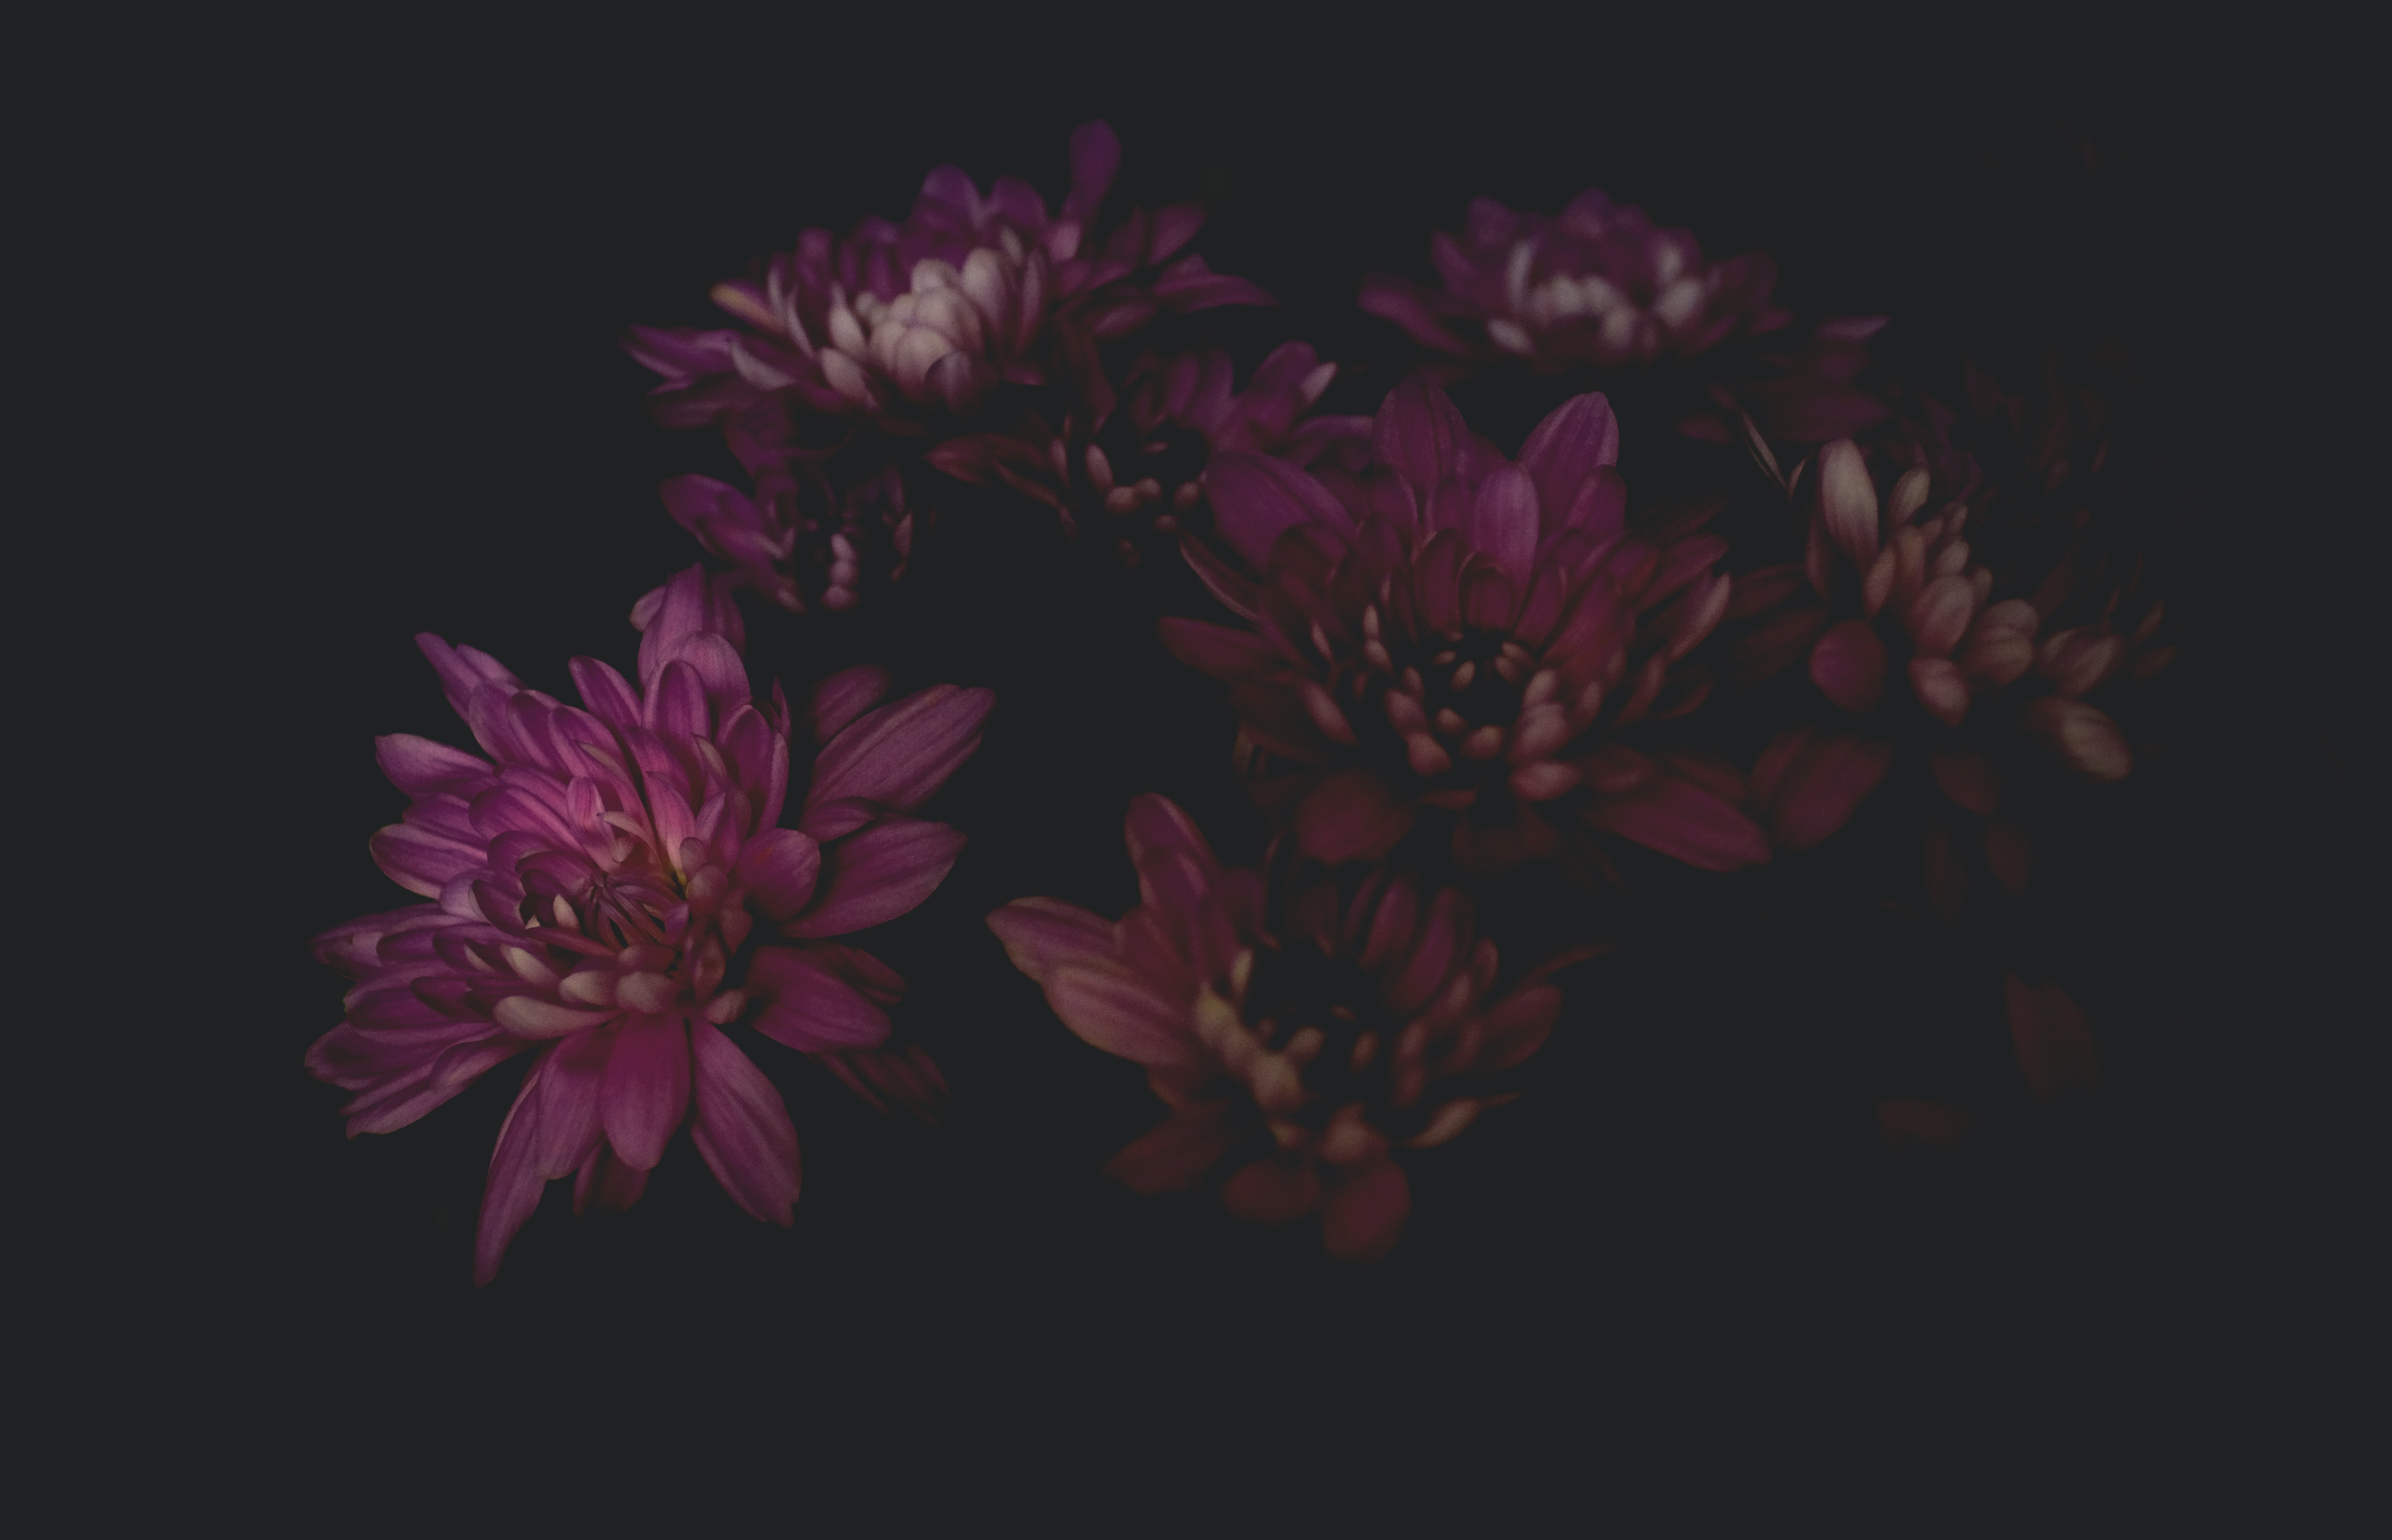 A dim shot of a bunch of purple flowers